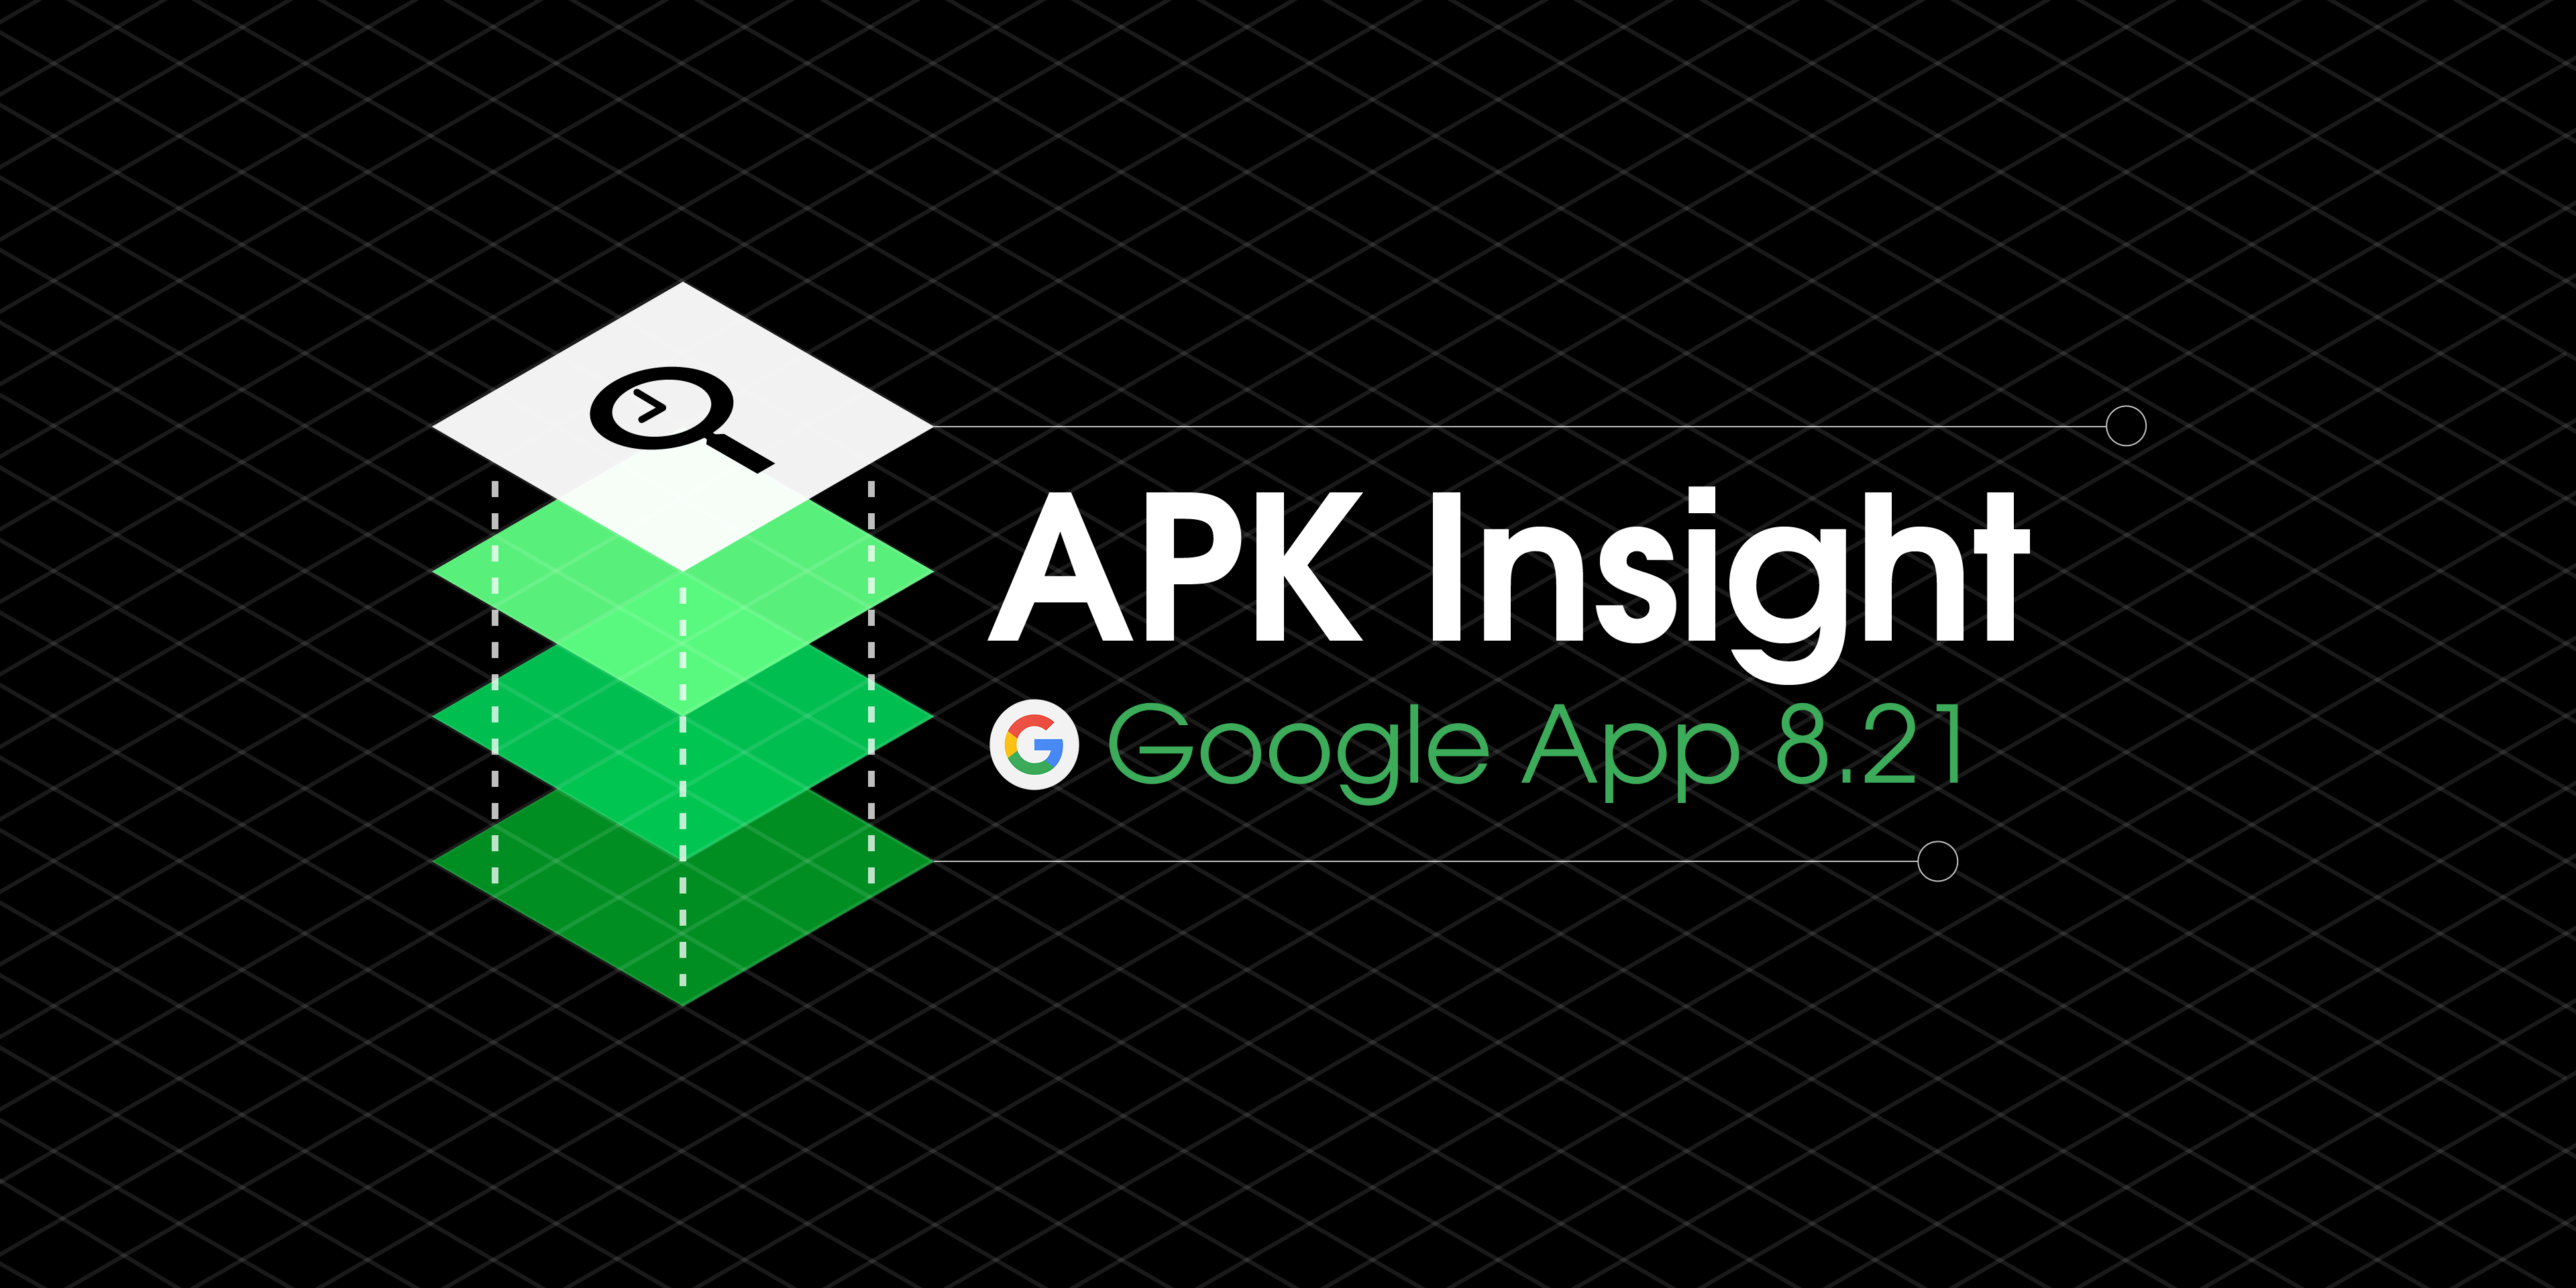 google app 8 21 details always on listening pixel stand ui trusted devices apk insight